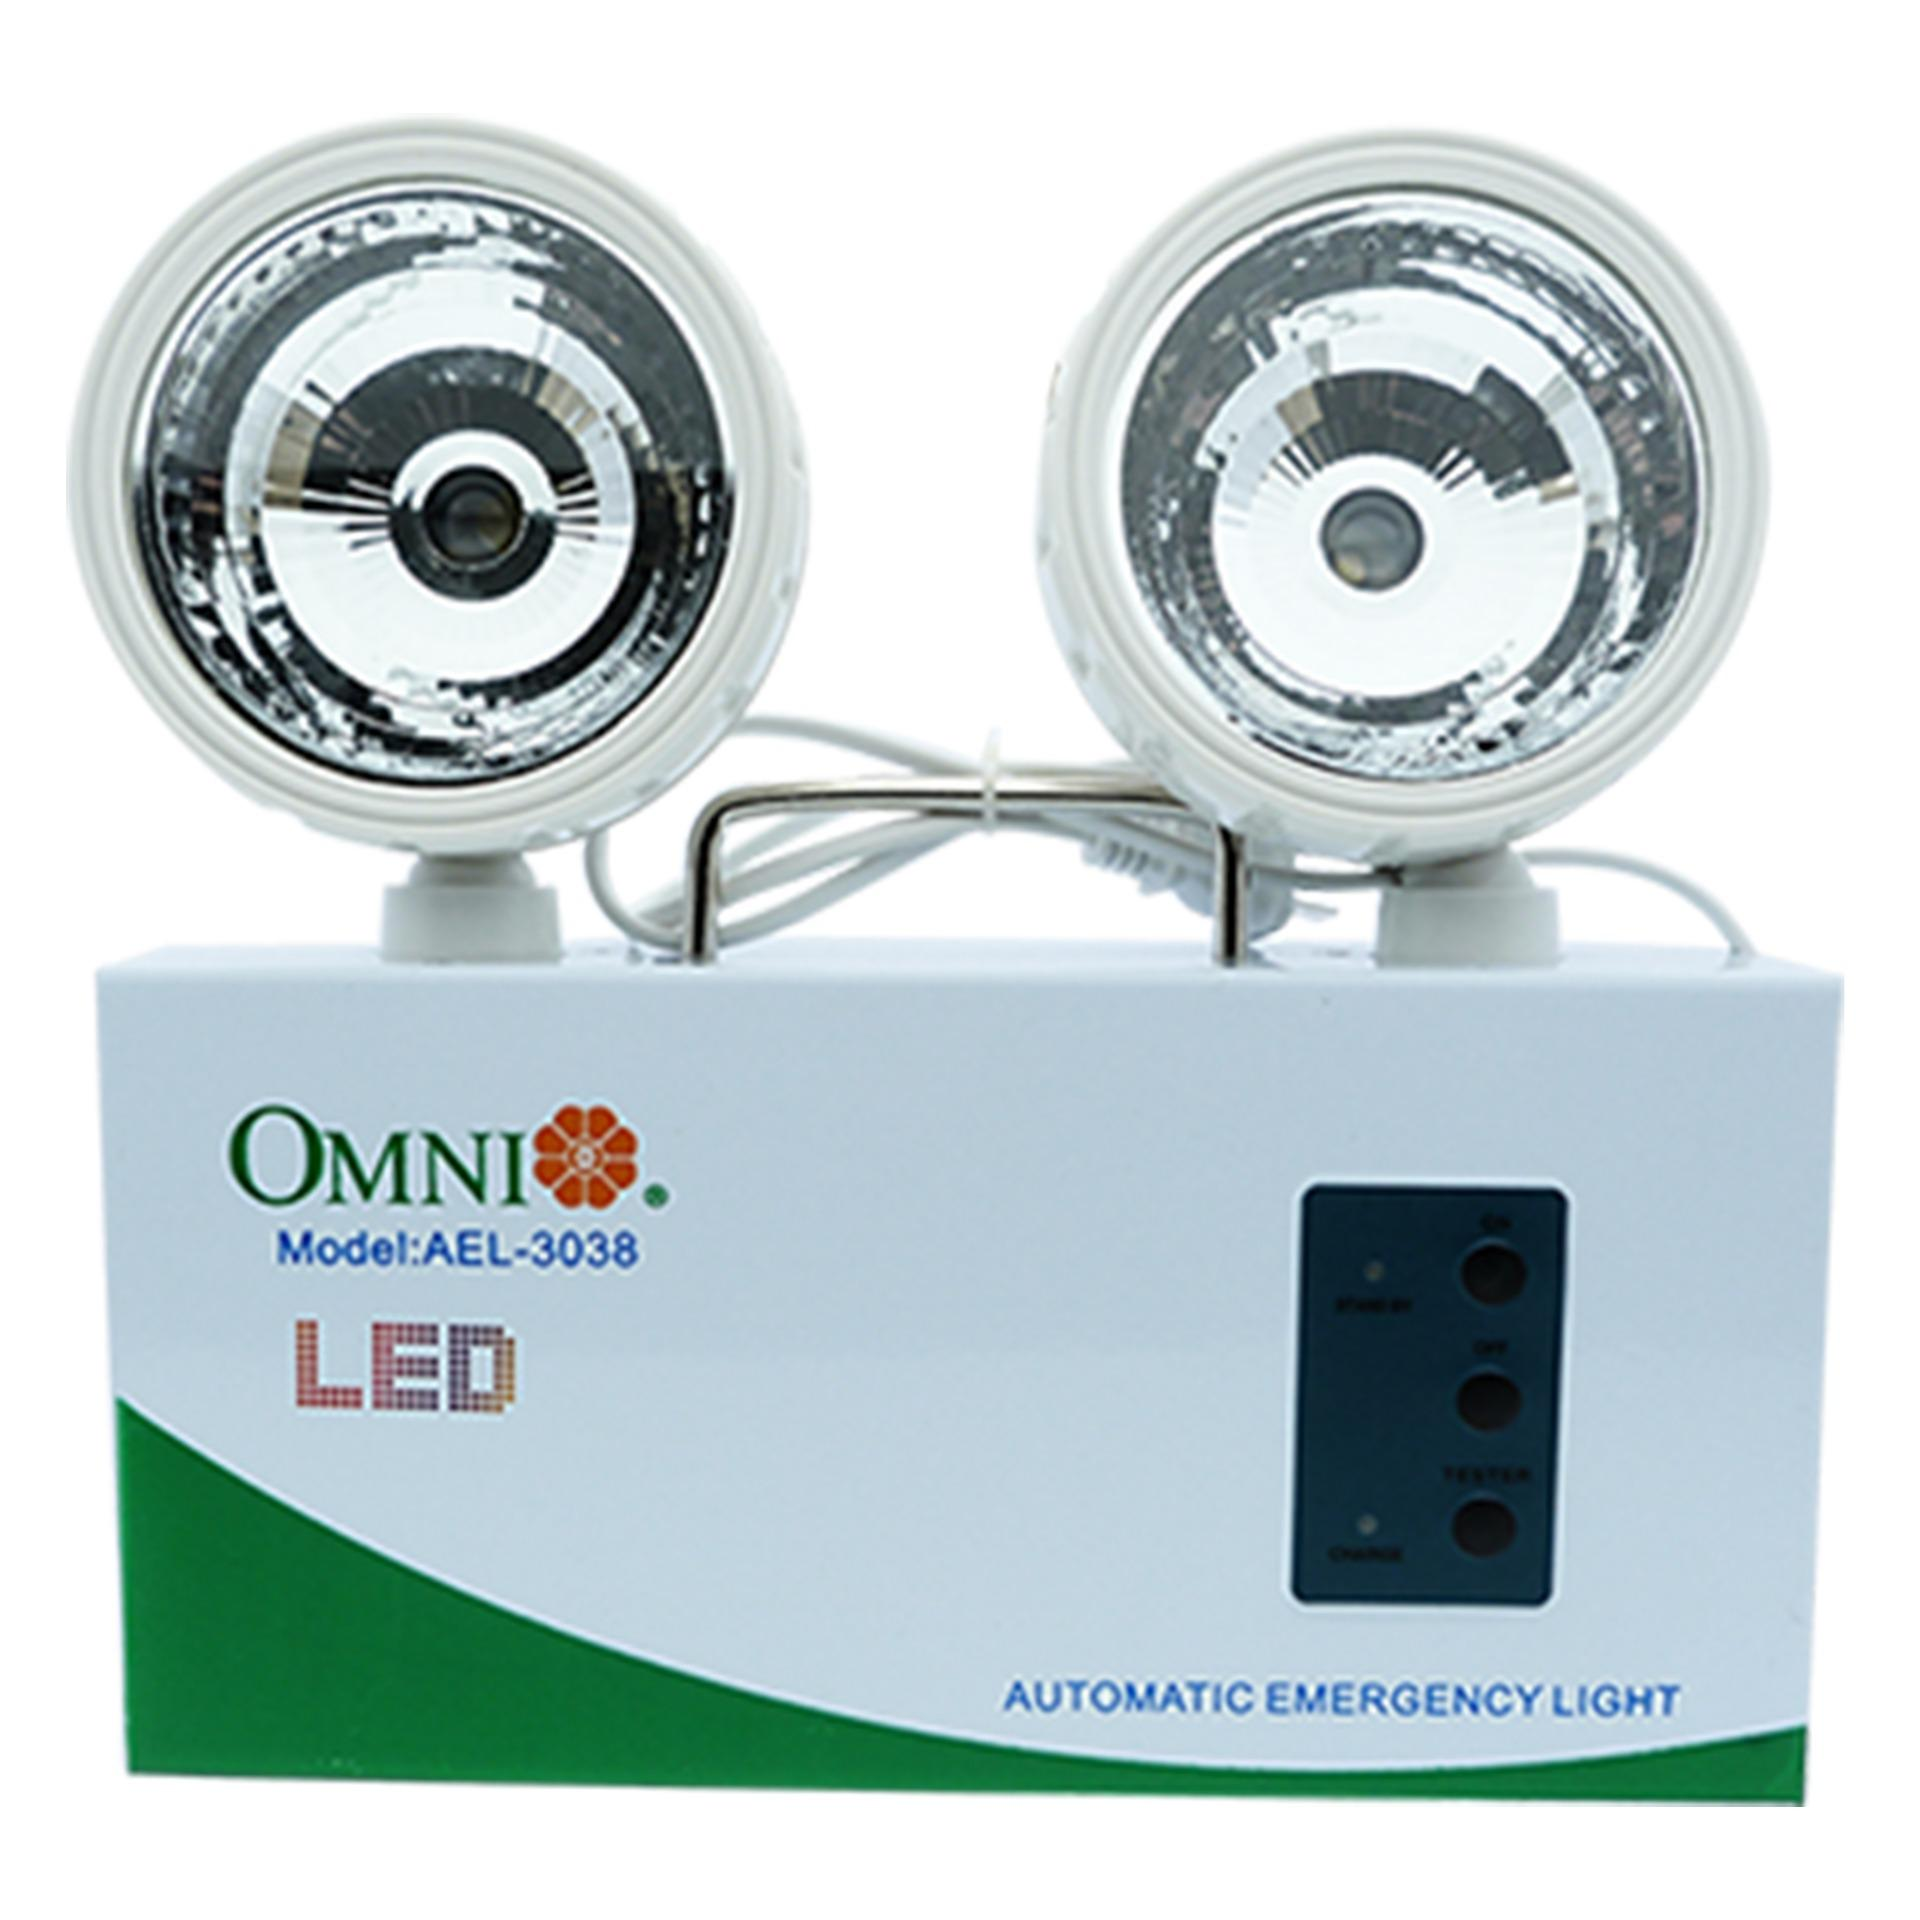 Buy Sell Cheapest Omni Automatic Rechargeable Best Quality Product Low Cost Emergency Ligh Led Light Ael 3038